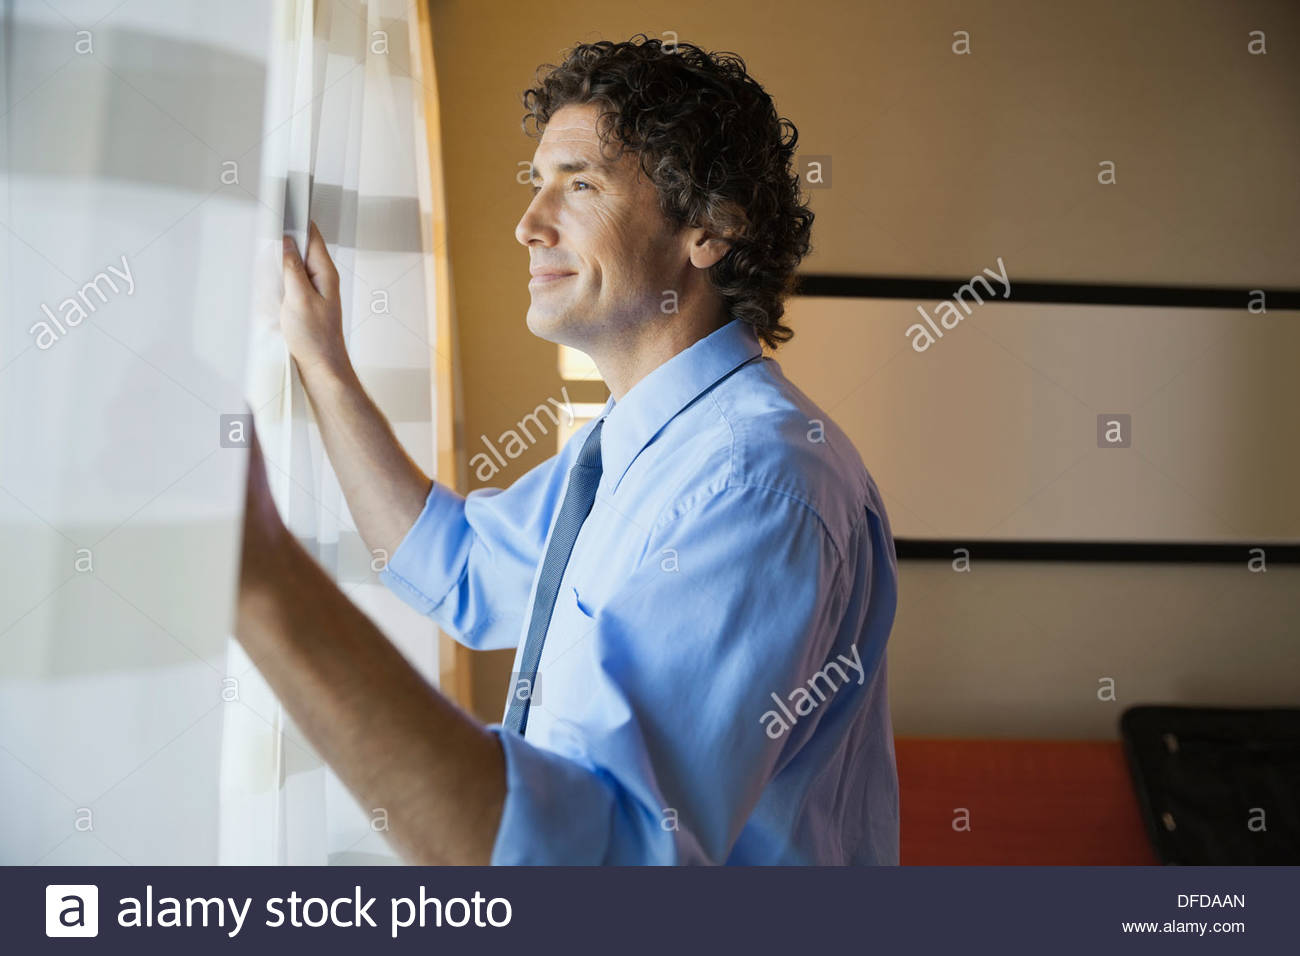 Smiling businessman looking out window in hotel room - Stock Image